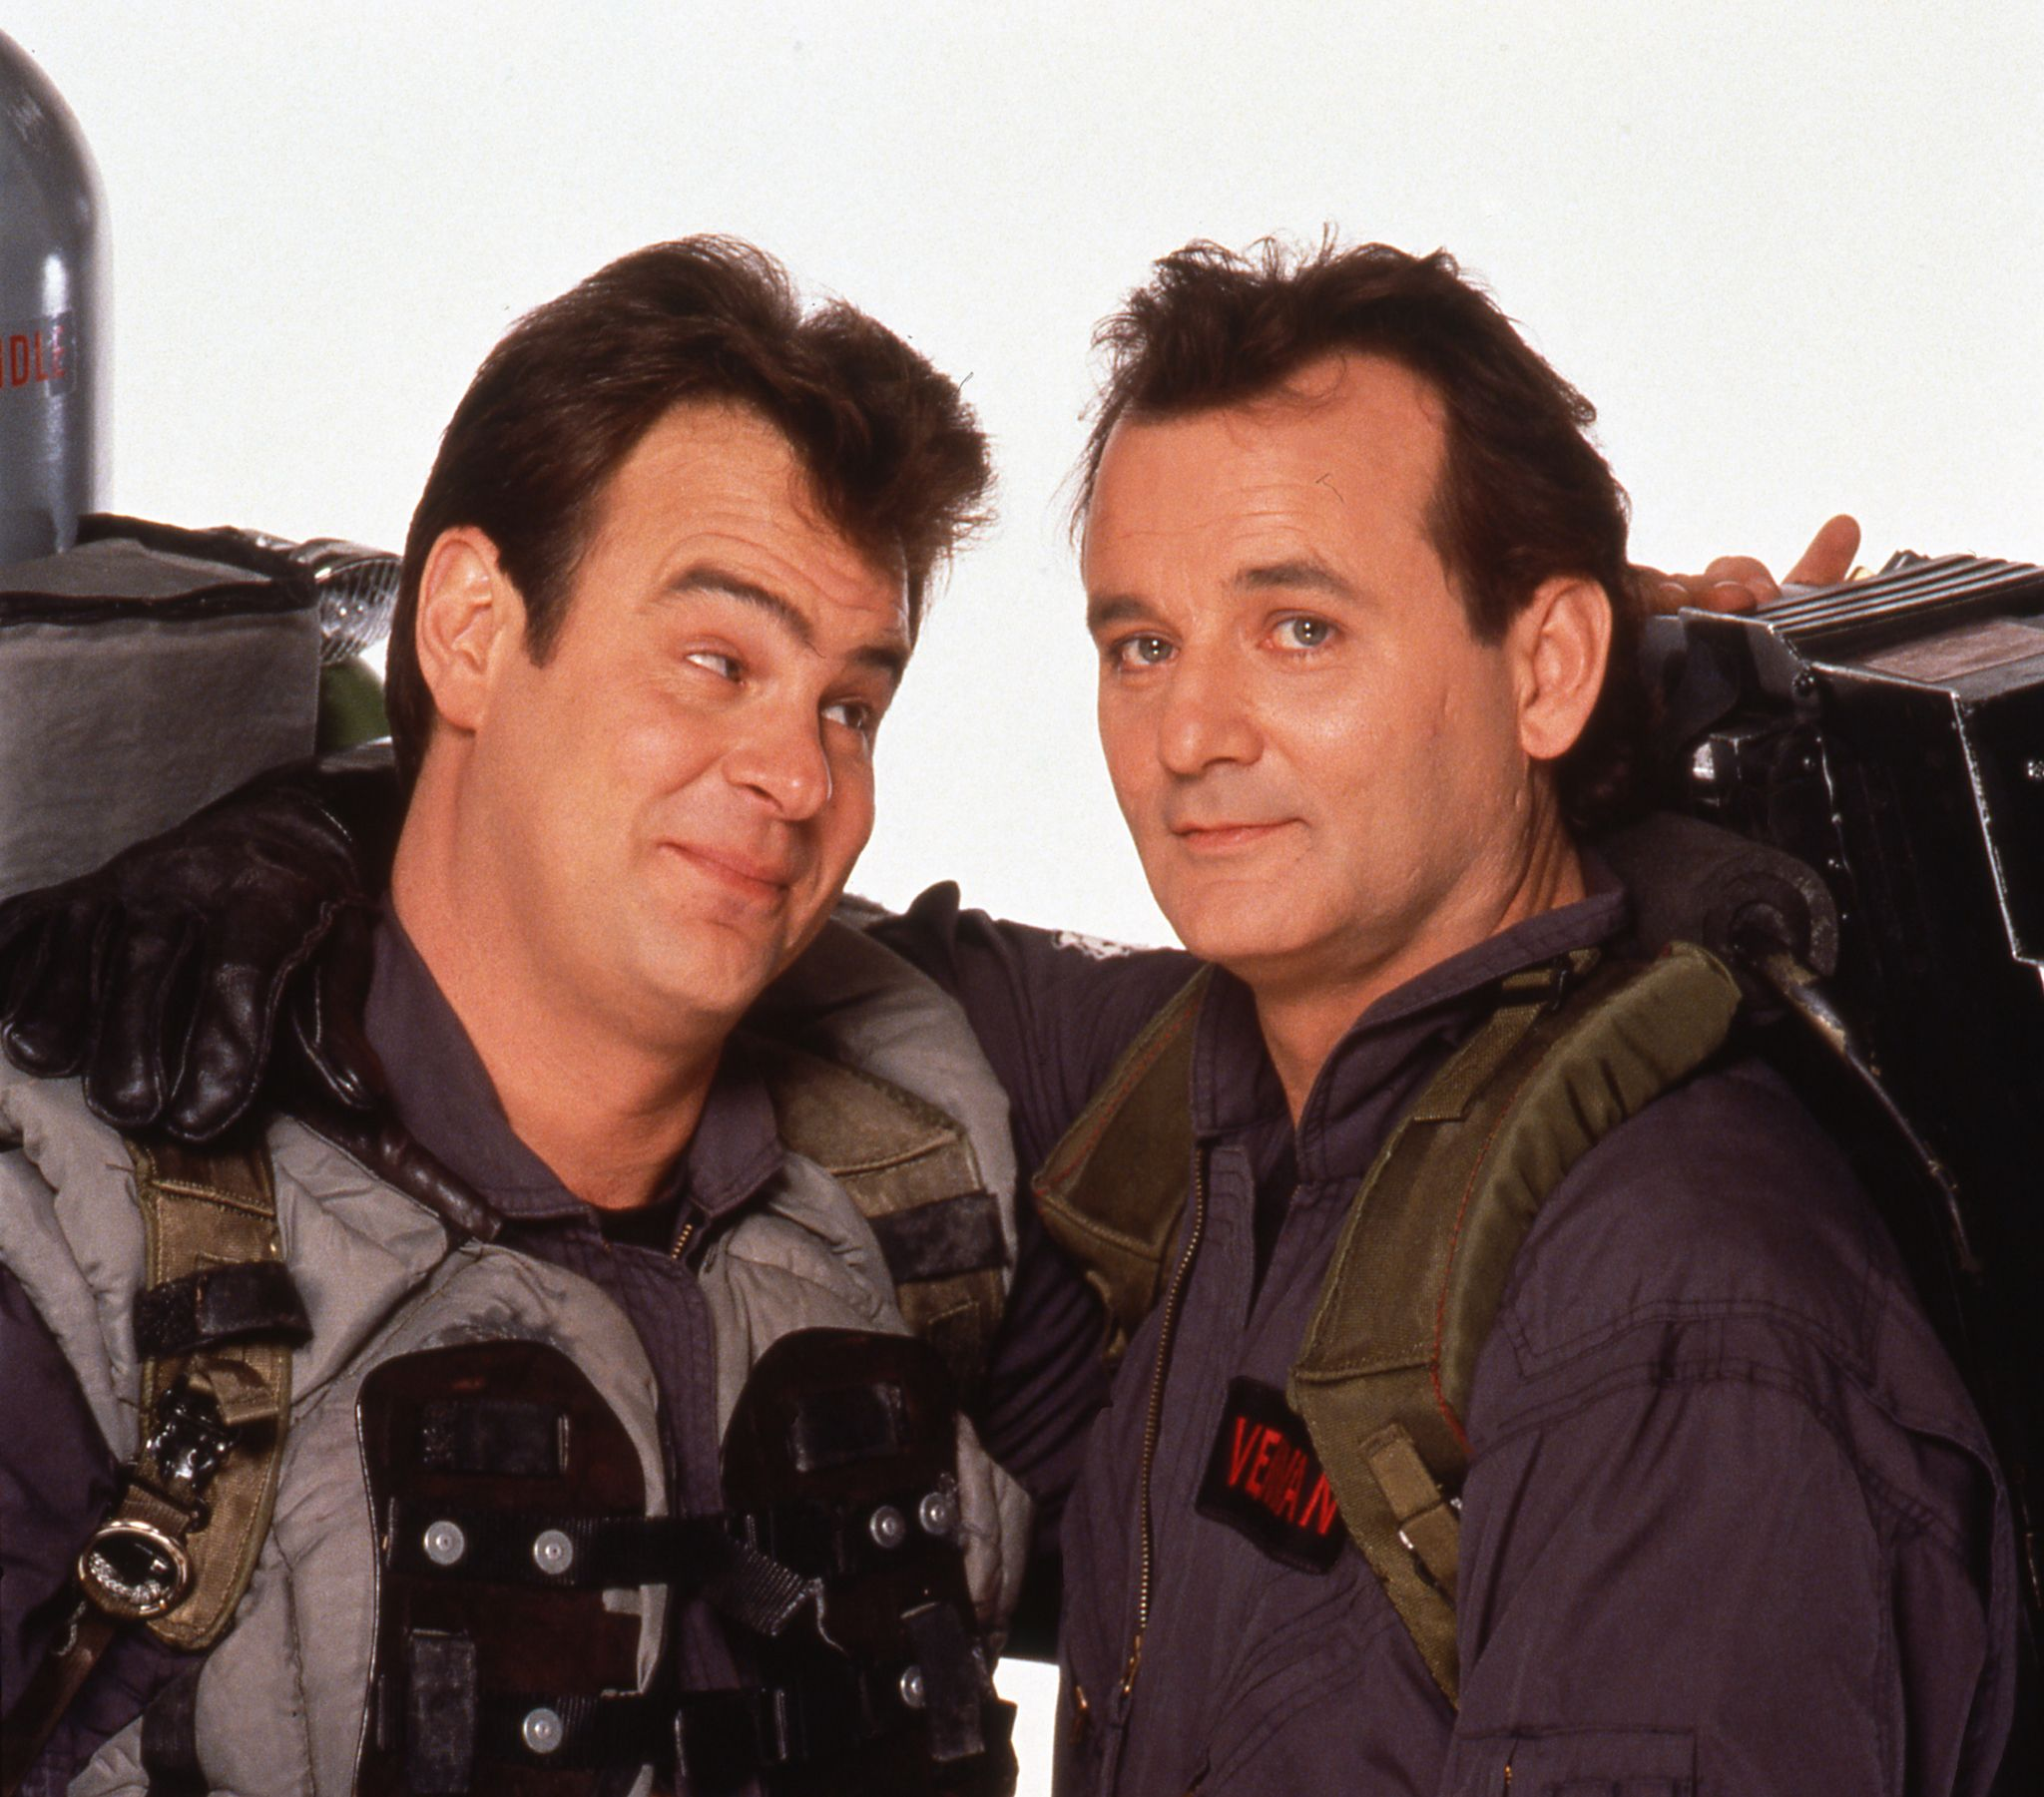 Ghostbusters' Dan Aykroyd confirms he is returning for new sequel